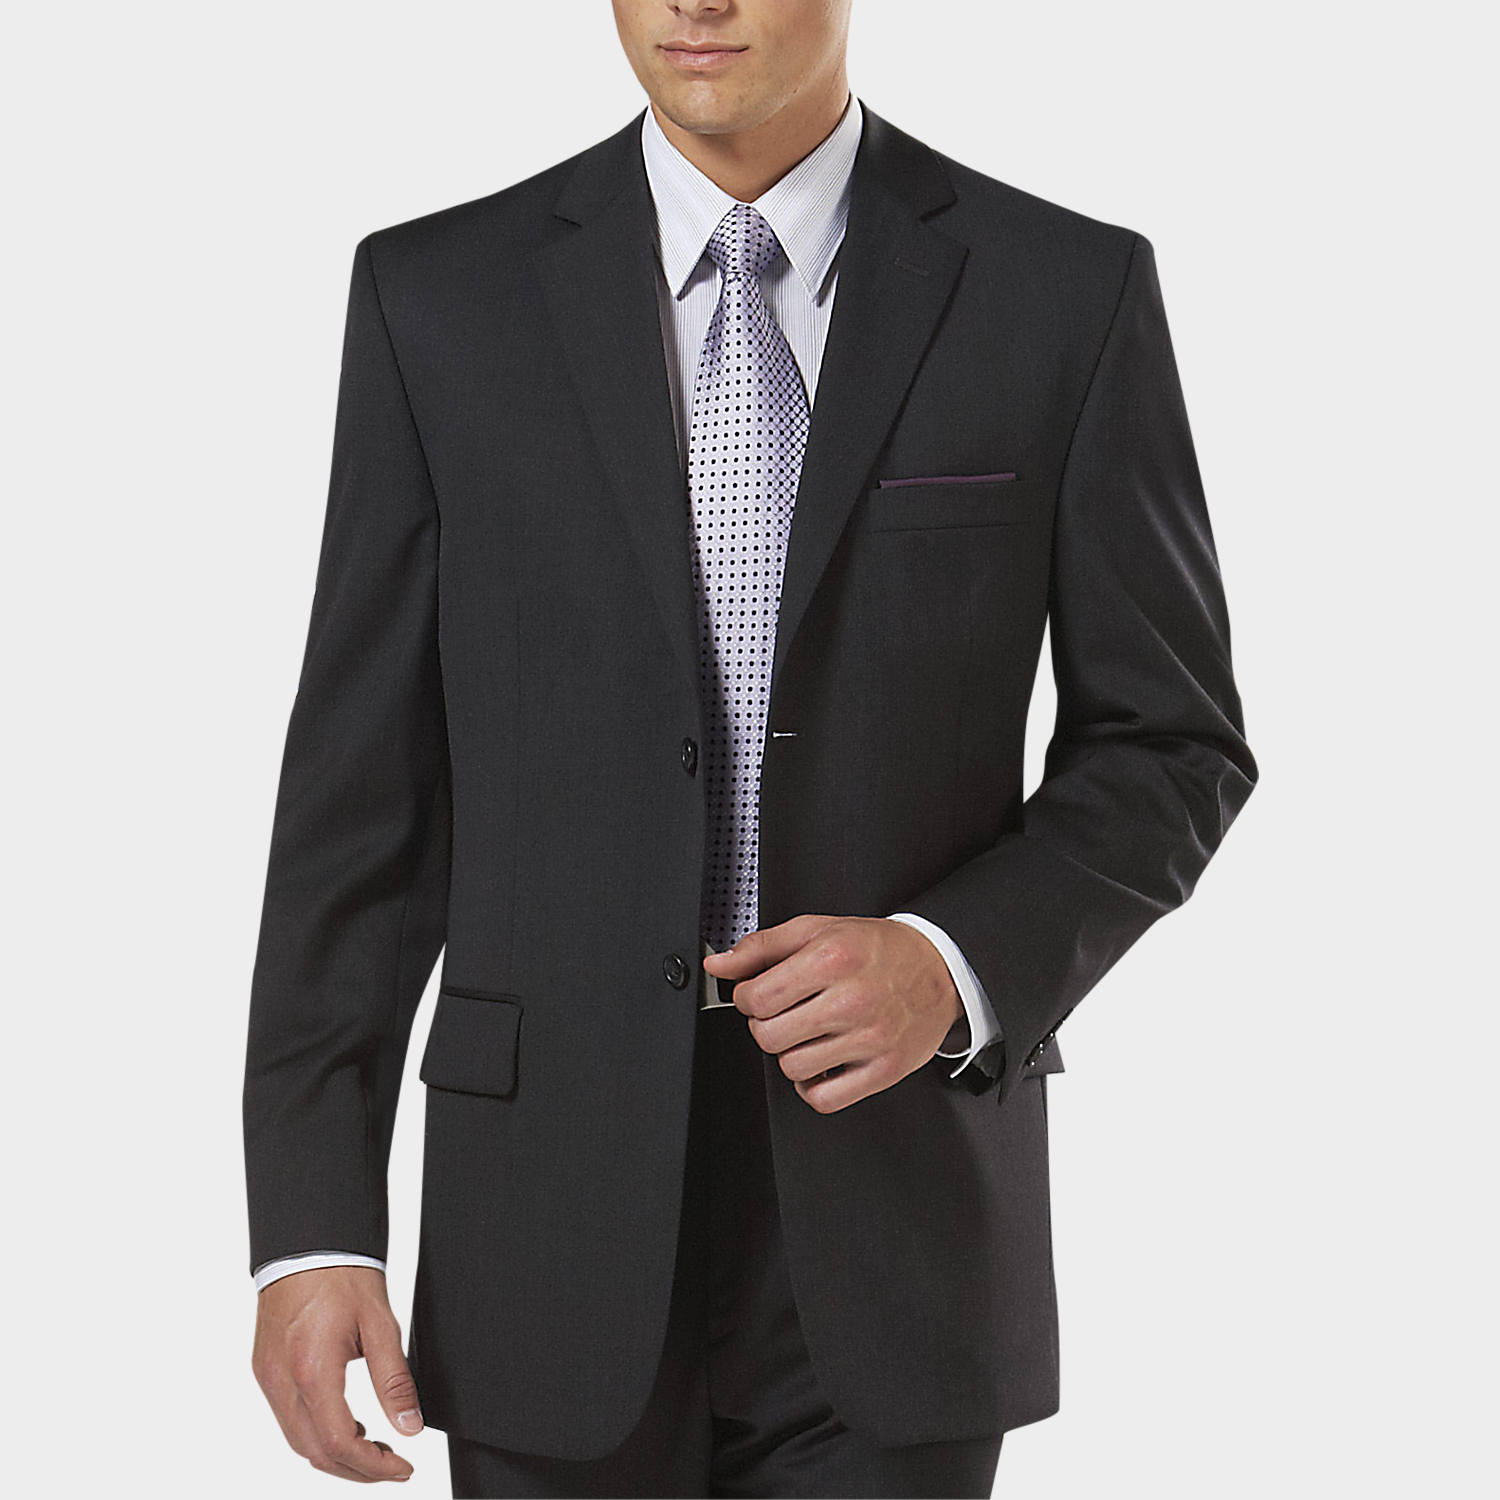 coat suit pronto uomo platinum suit separates coat, charcoal - menu0027s suit separate  coats | LUREPPC